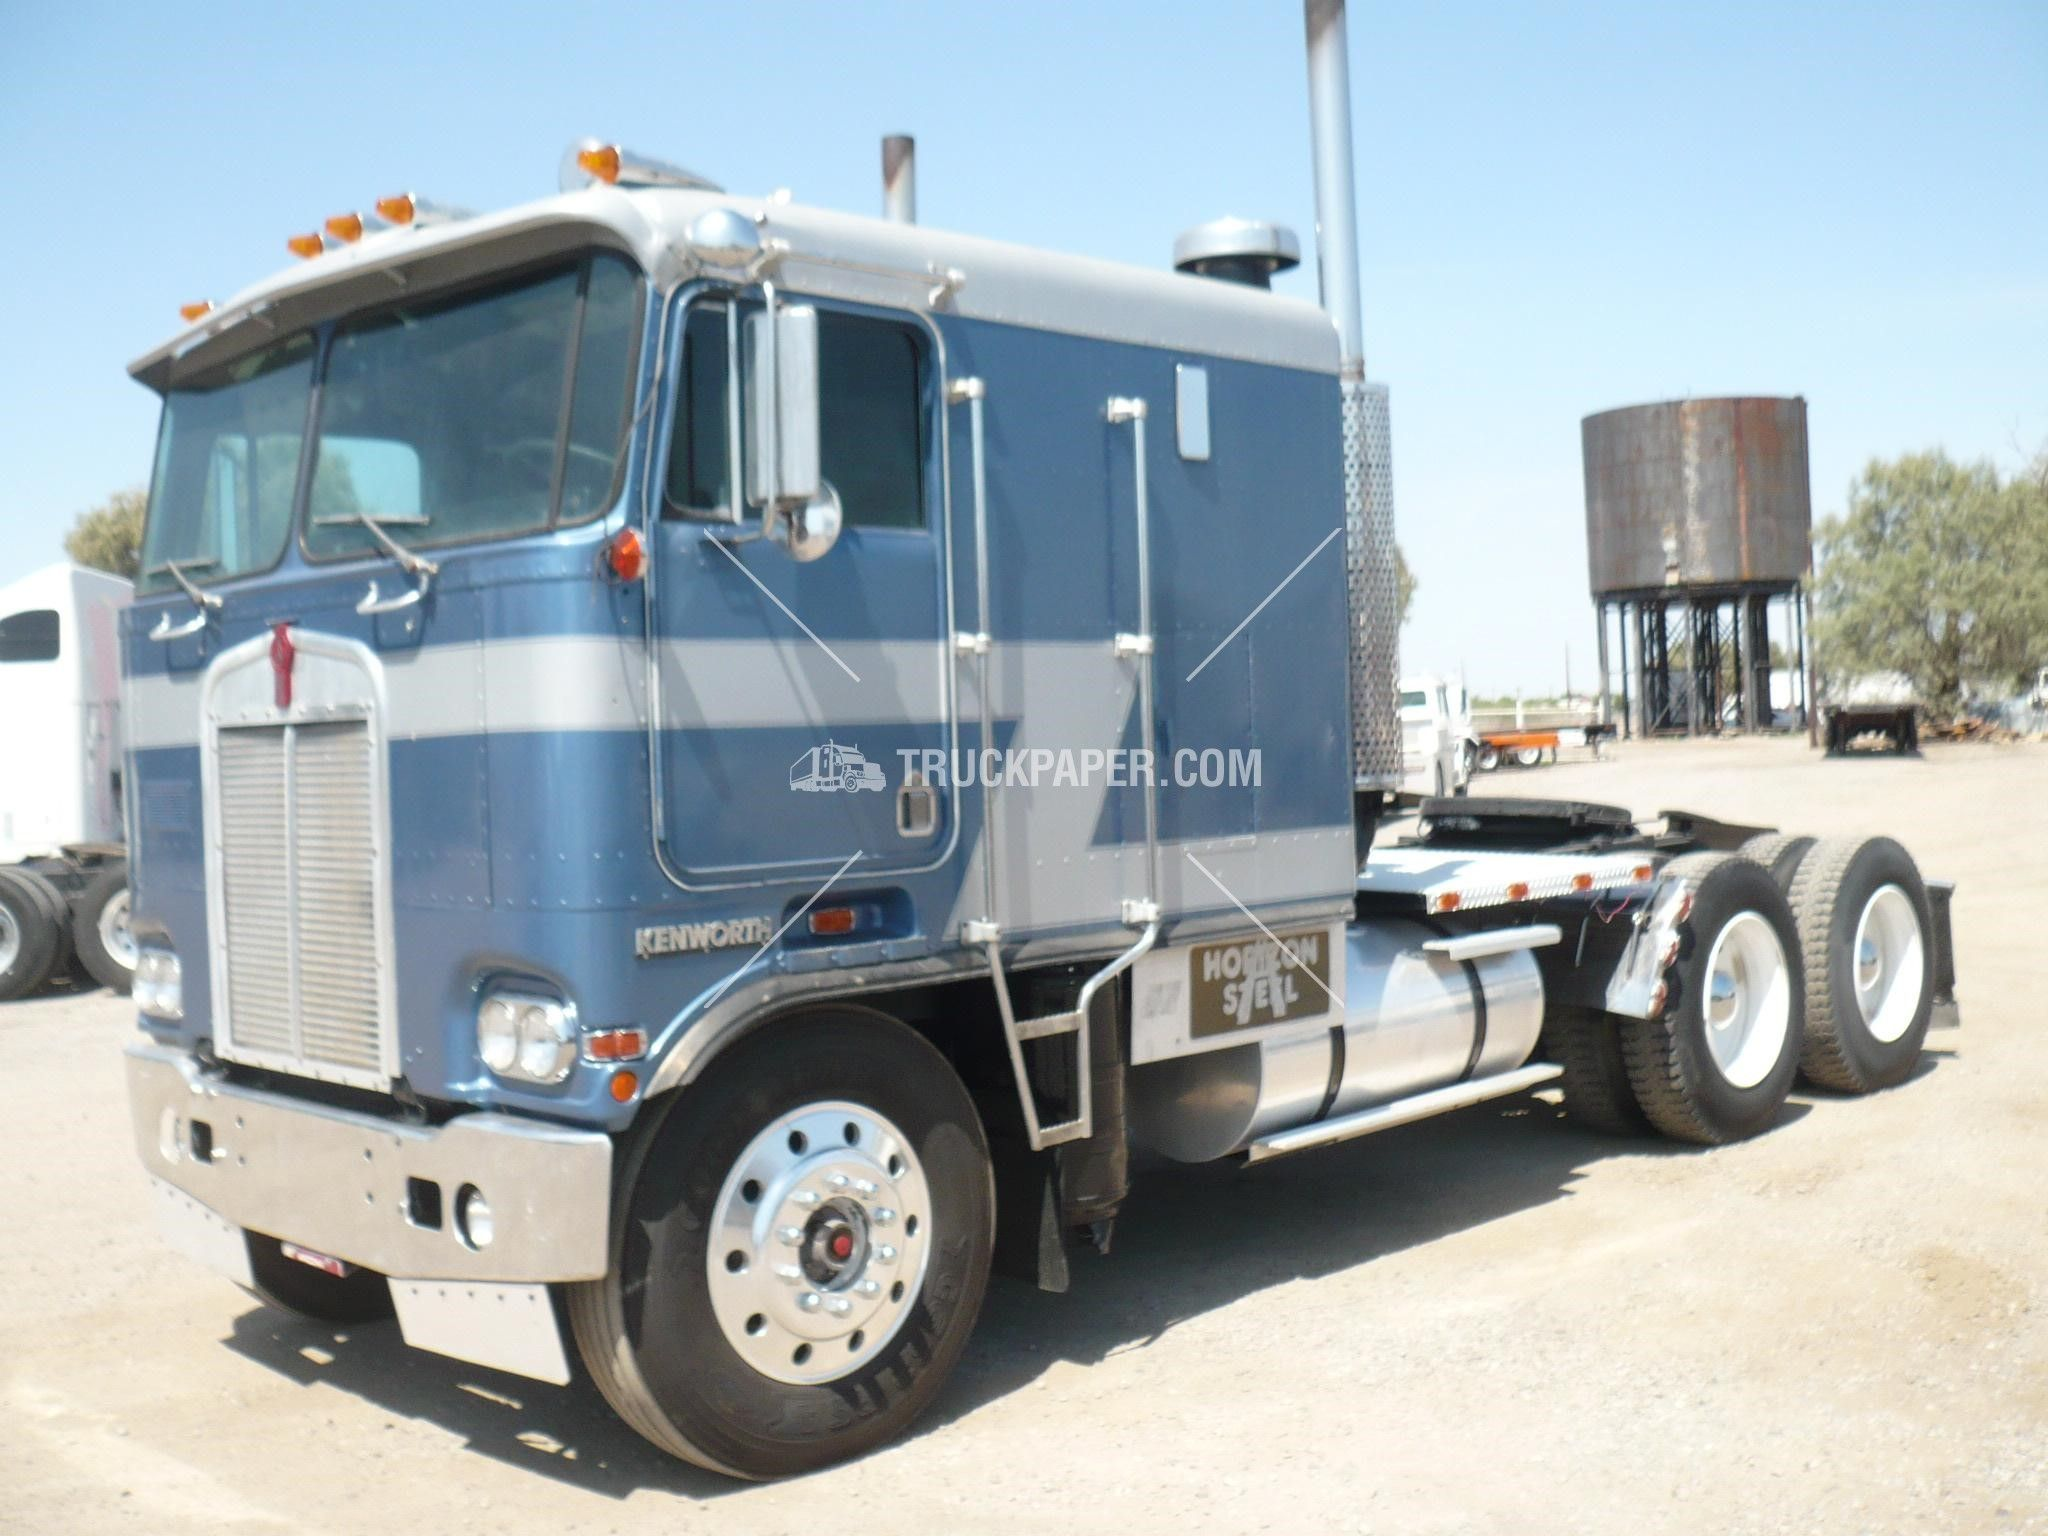 Cabover Trucks For Sale >> 1978 Kenworth K100c Heavy Duty Trucks Cabover Trucks W